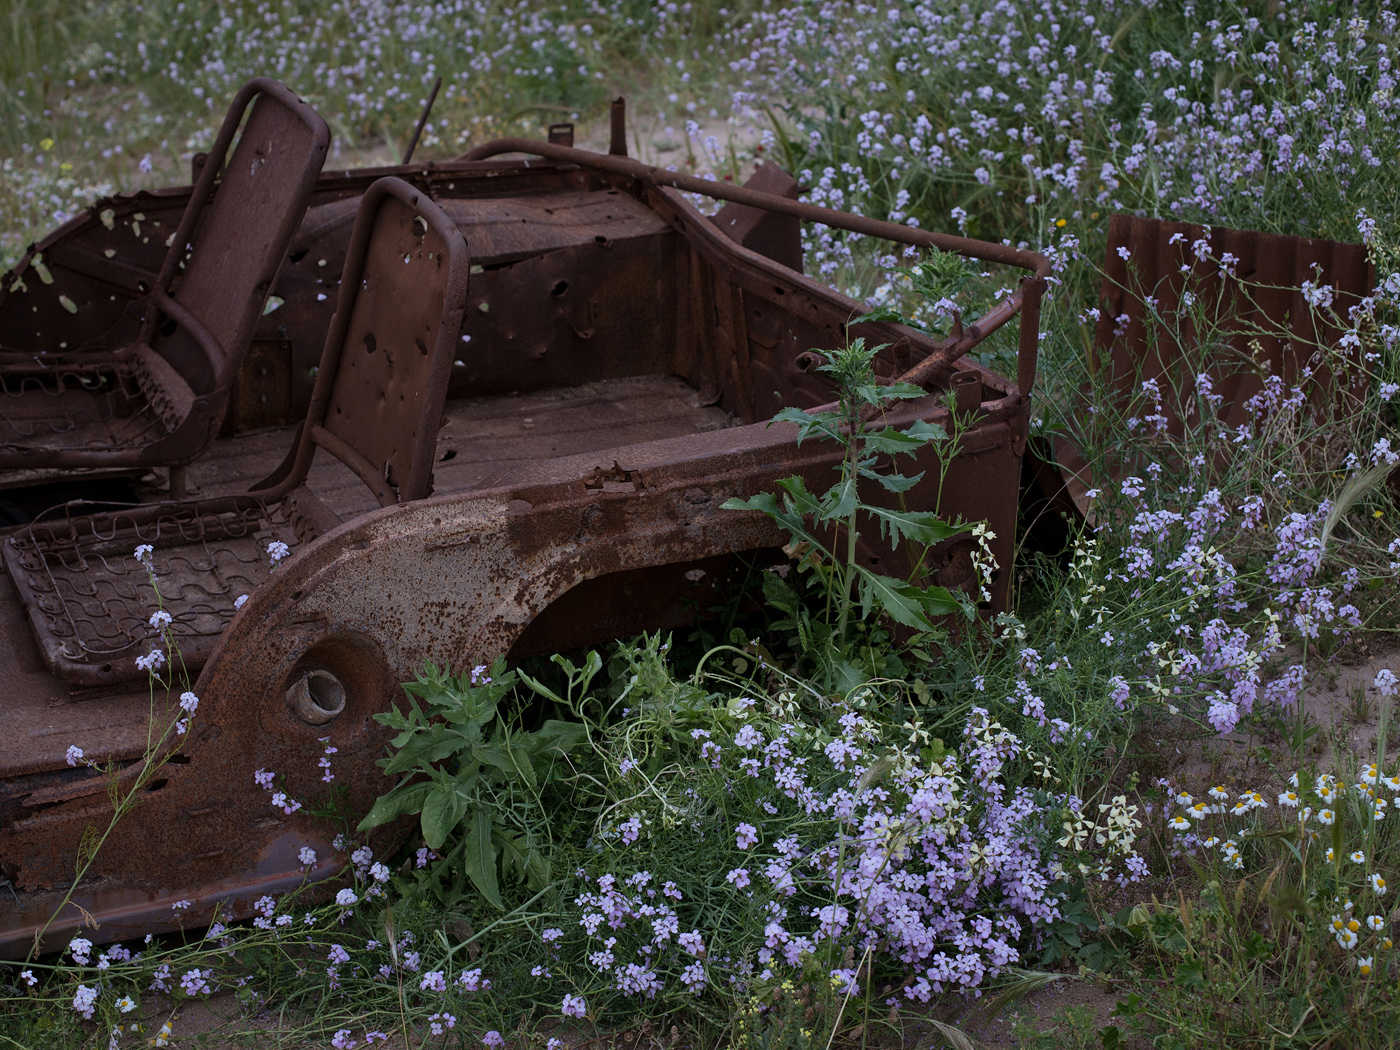 A burnt-out Iraqi jeep, relict of the Iran-Iraq War is covered by early spring vegetation.